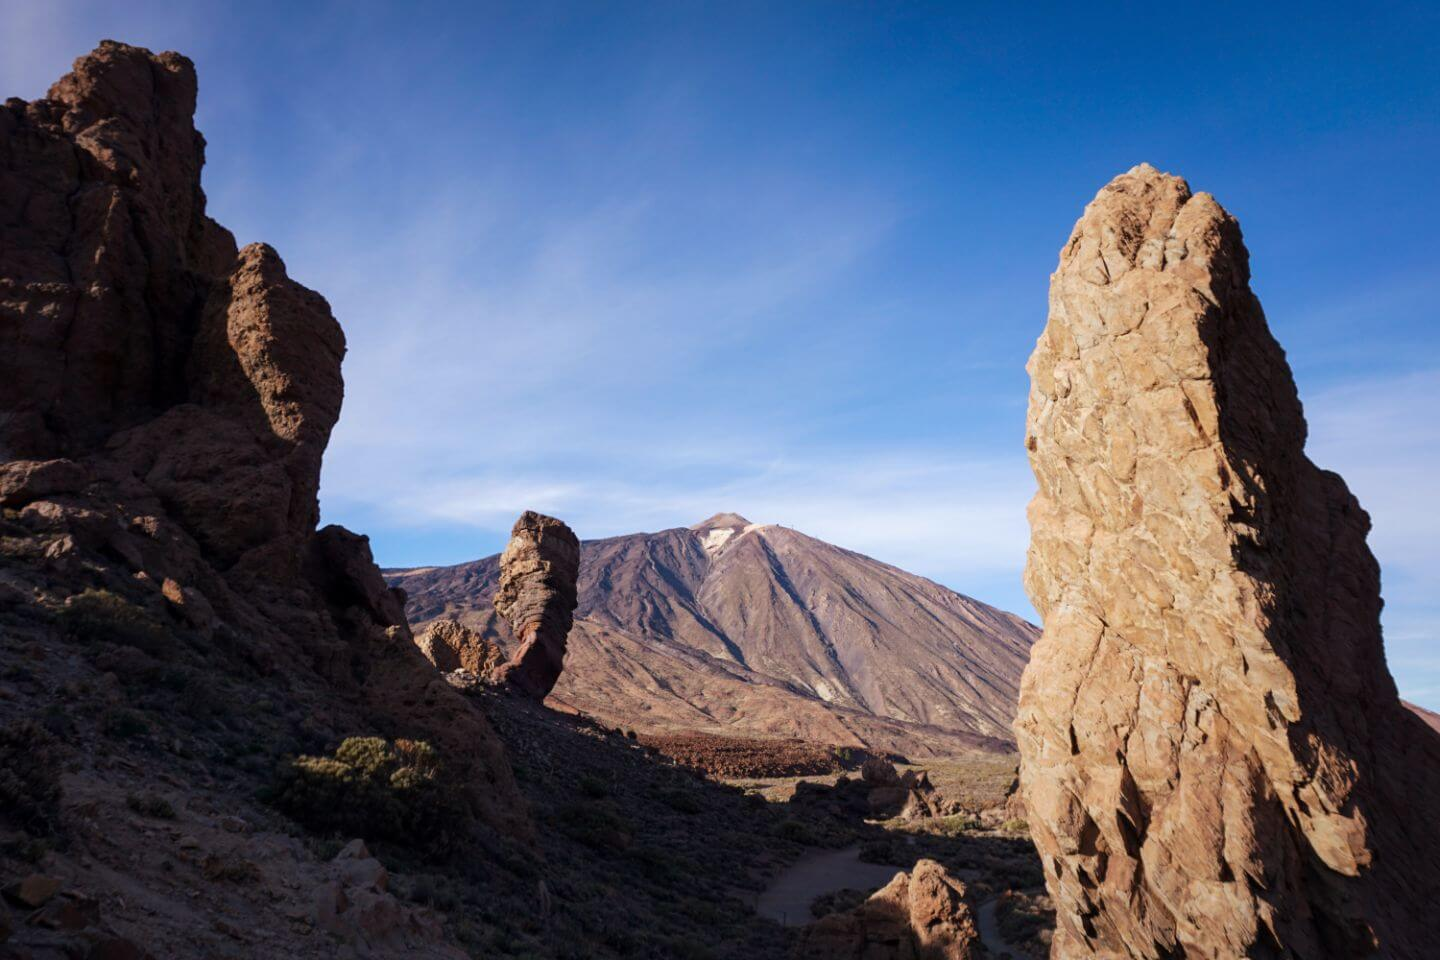 El Teide, Teide National Park, Tenerife, Spain